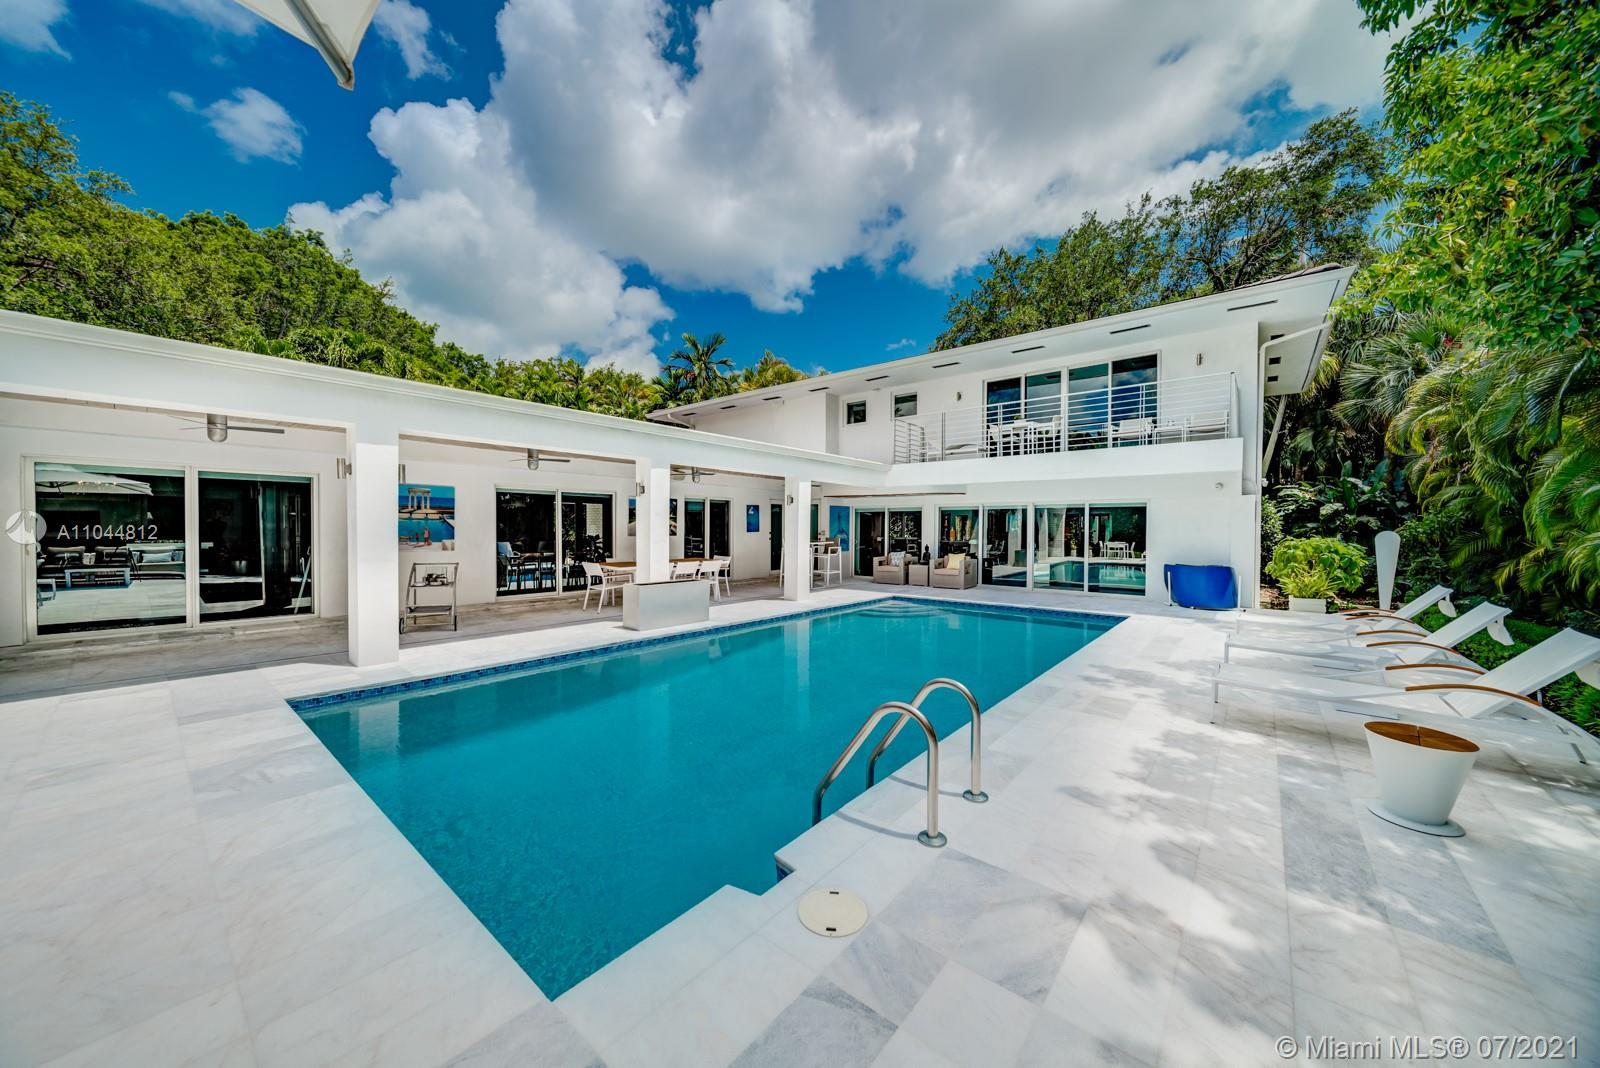 Flawless contemporary 4/3 pool home in Bay Point Estates w/magnificent Zen garden & koi pond poi are